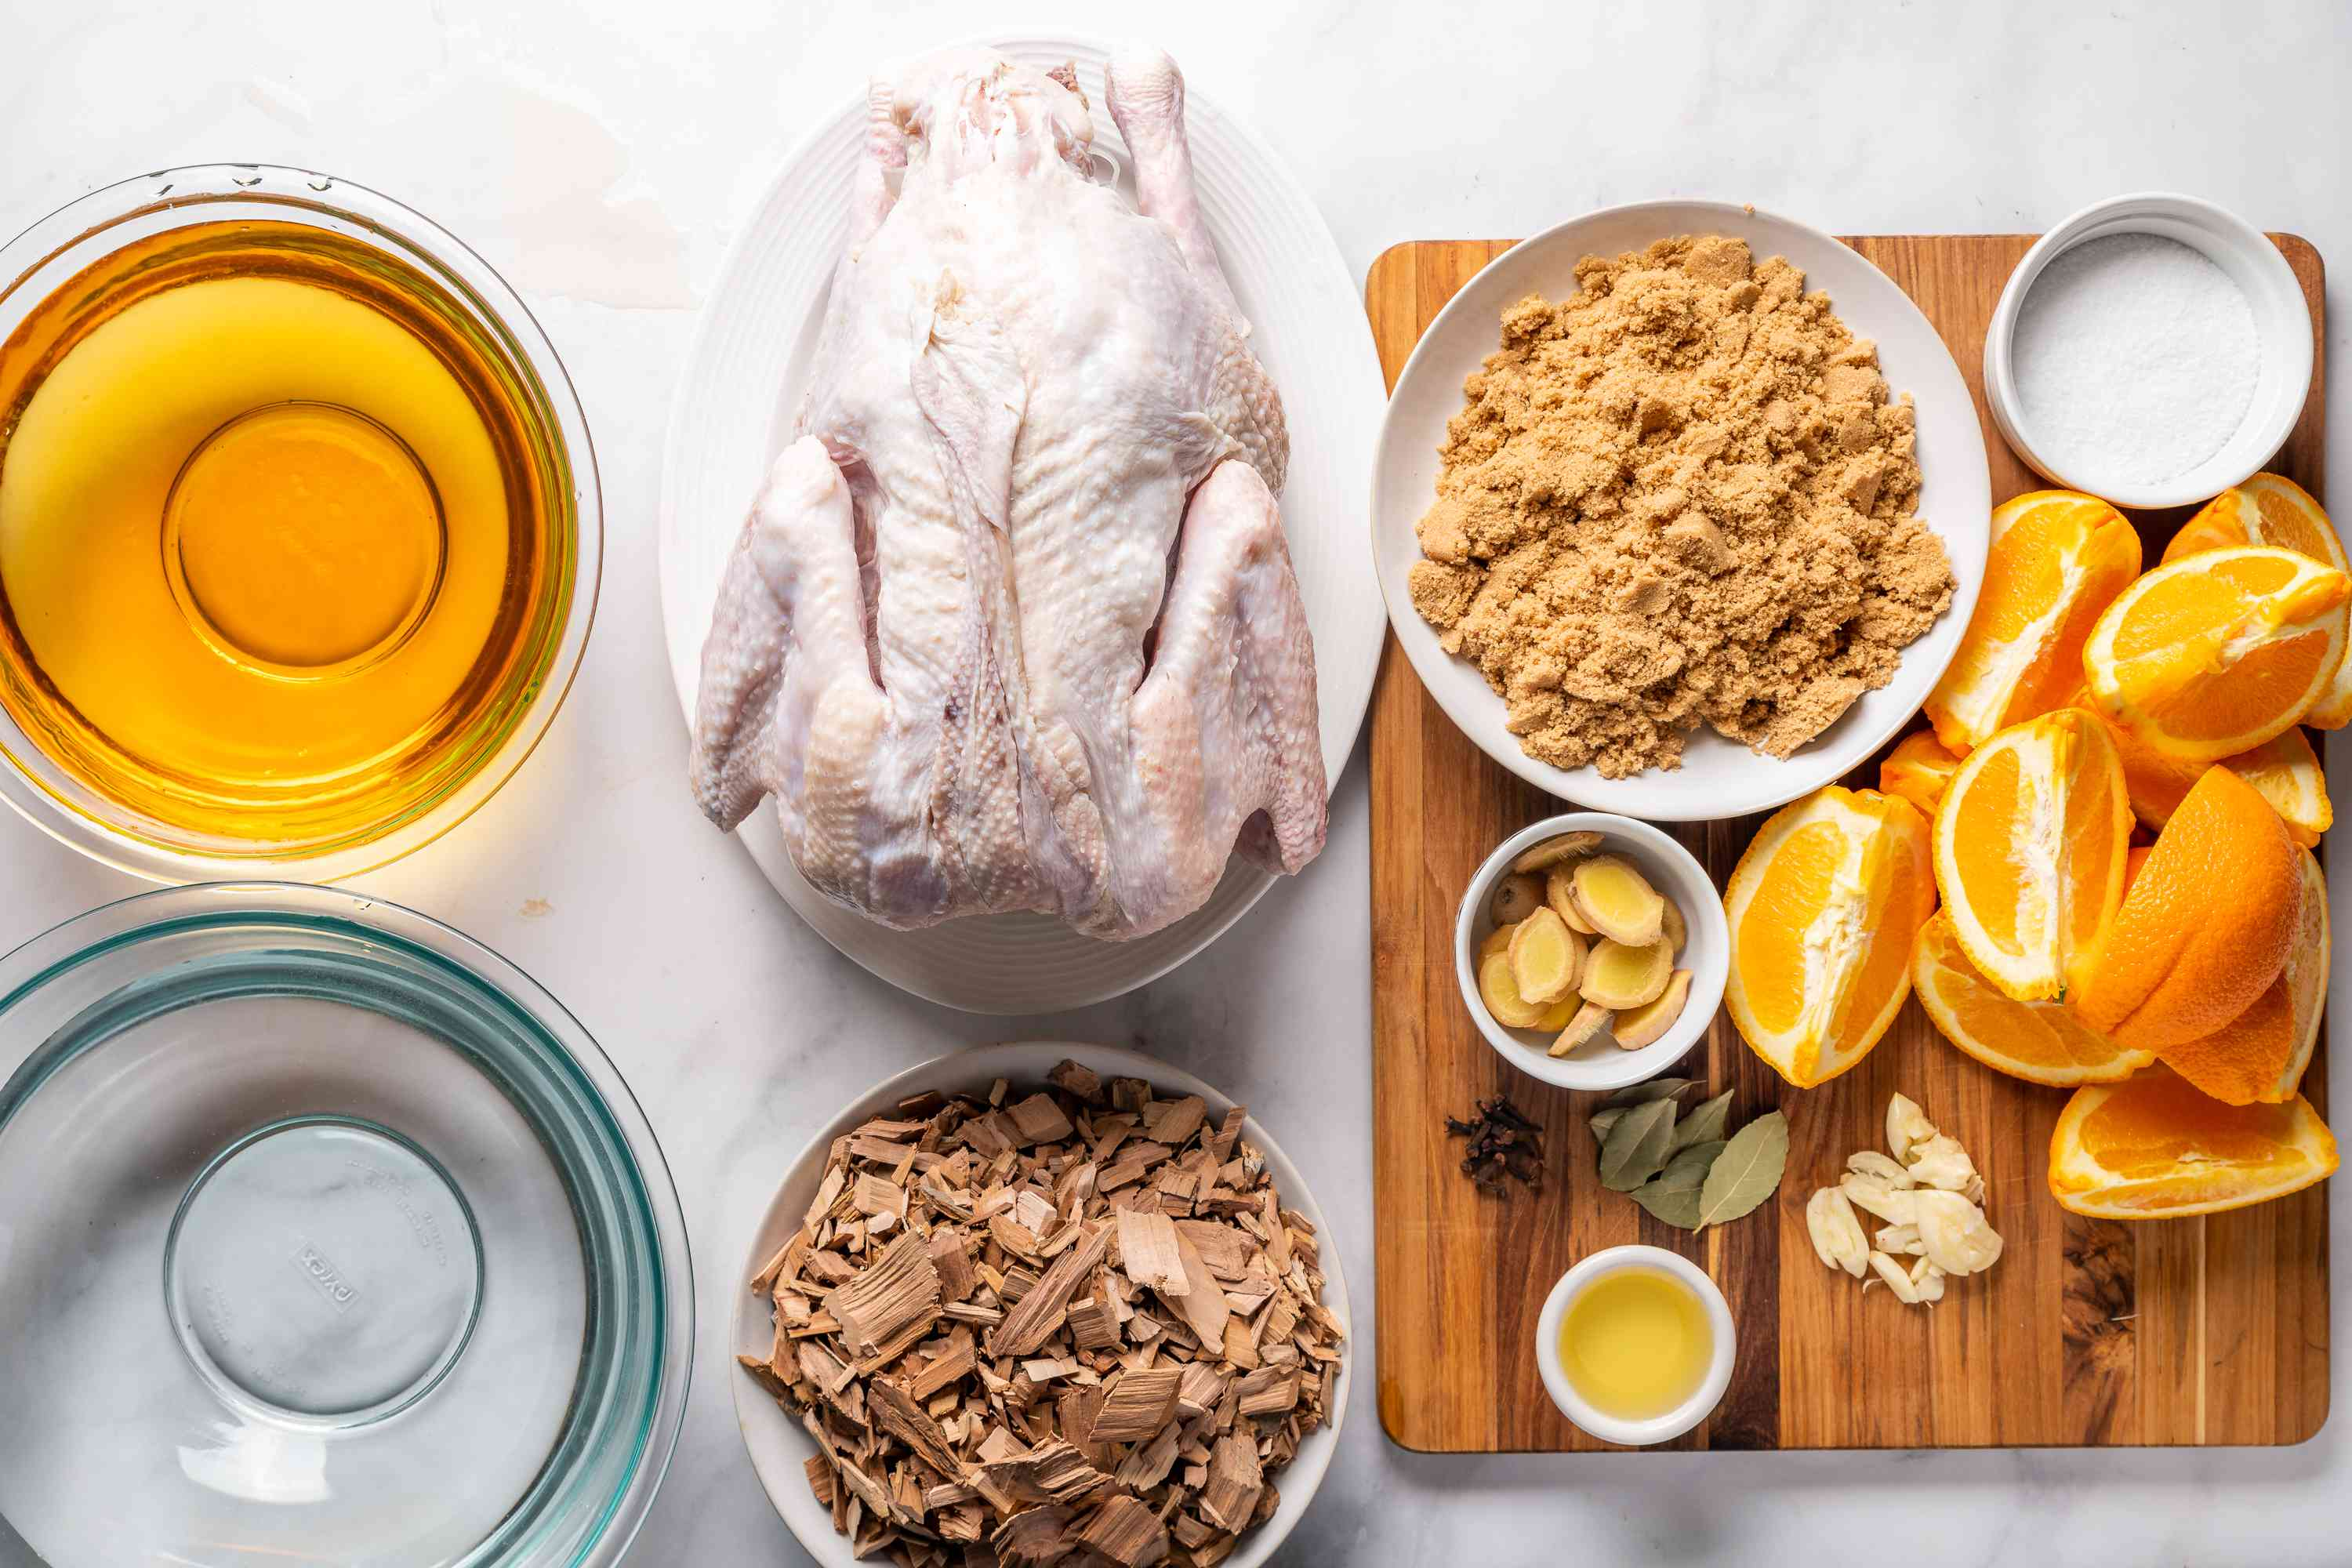 Smoke a Turkey on the Grill ingredients